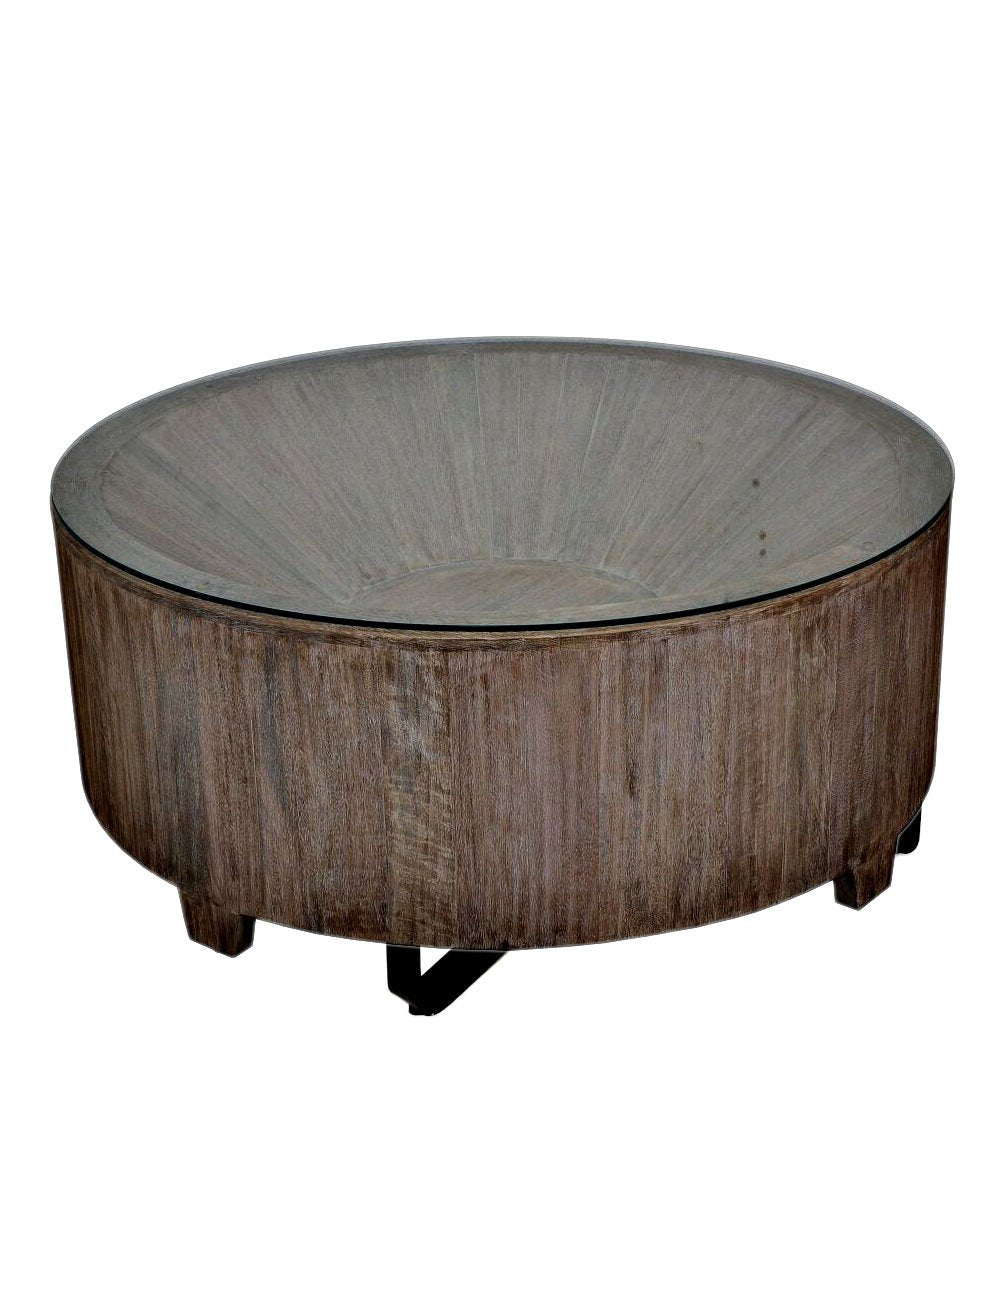 Corral Coffee Table-Teak Wood - decorstore